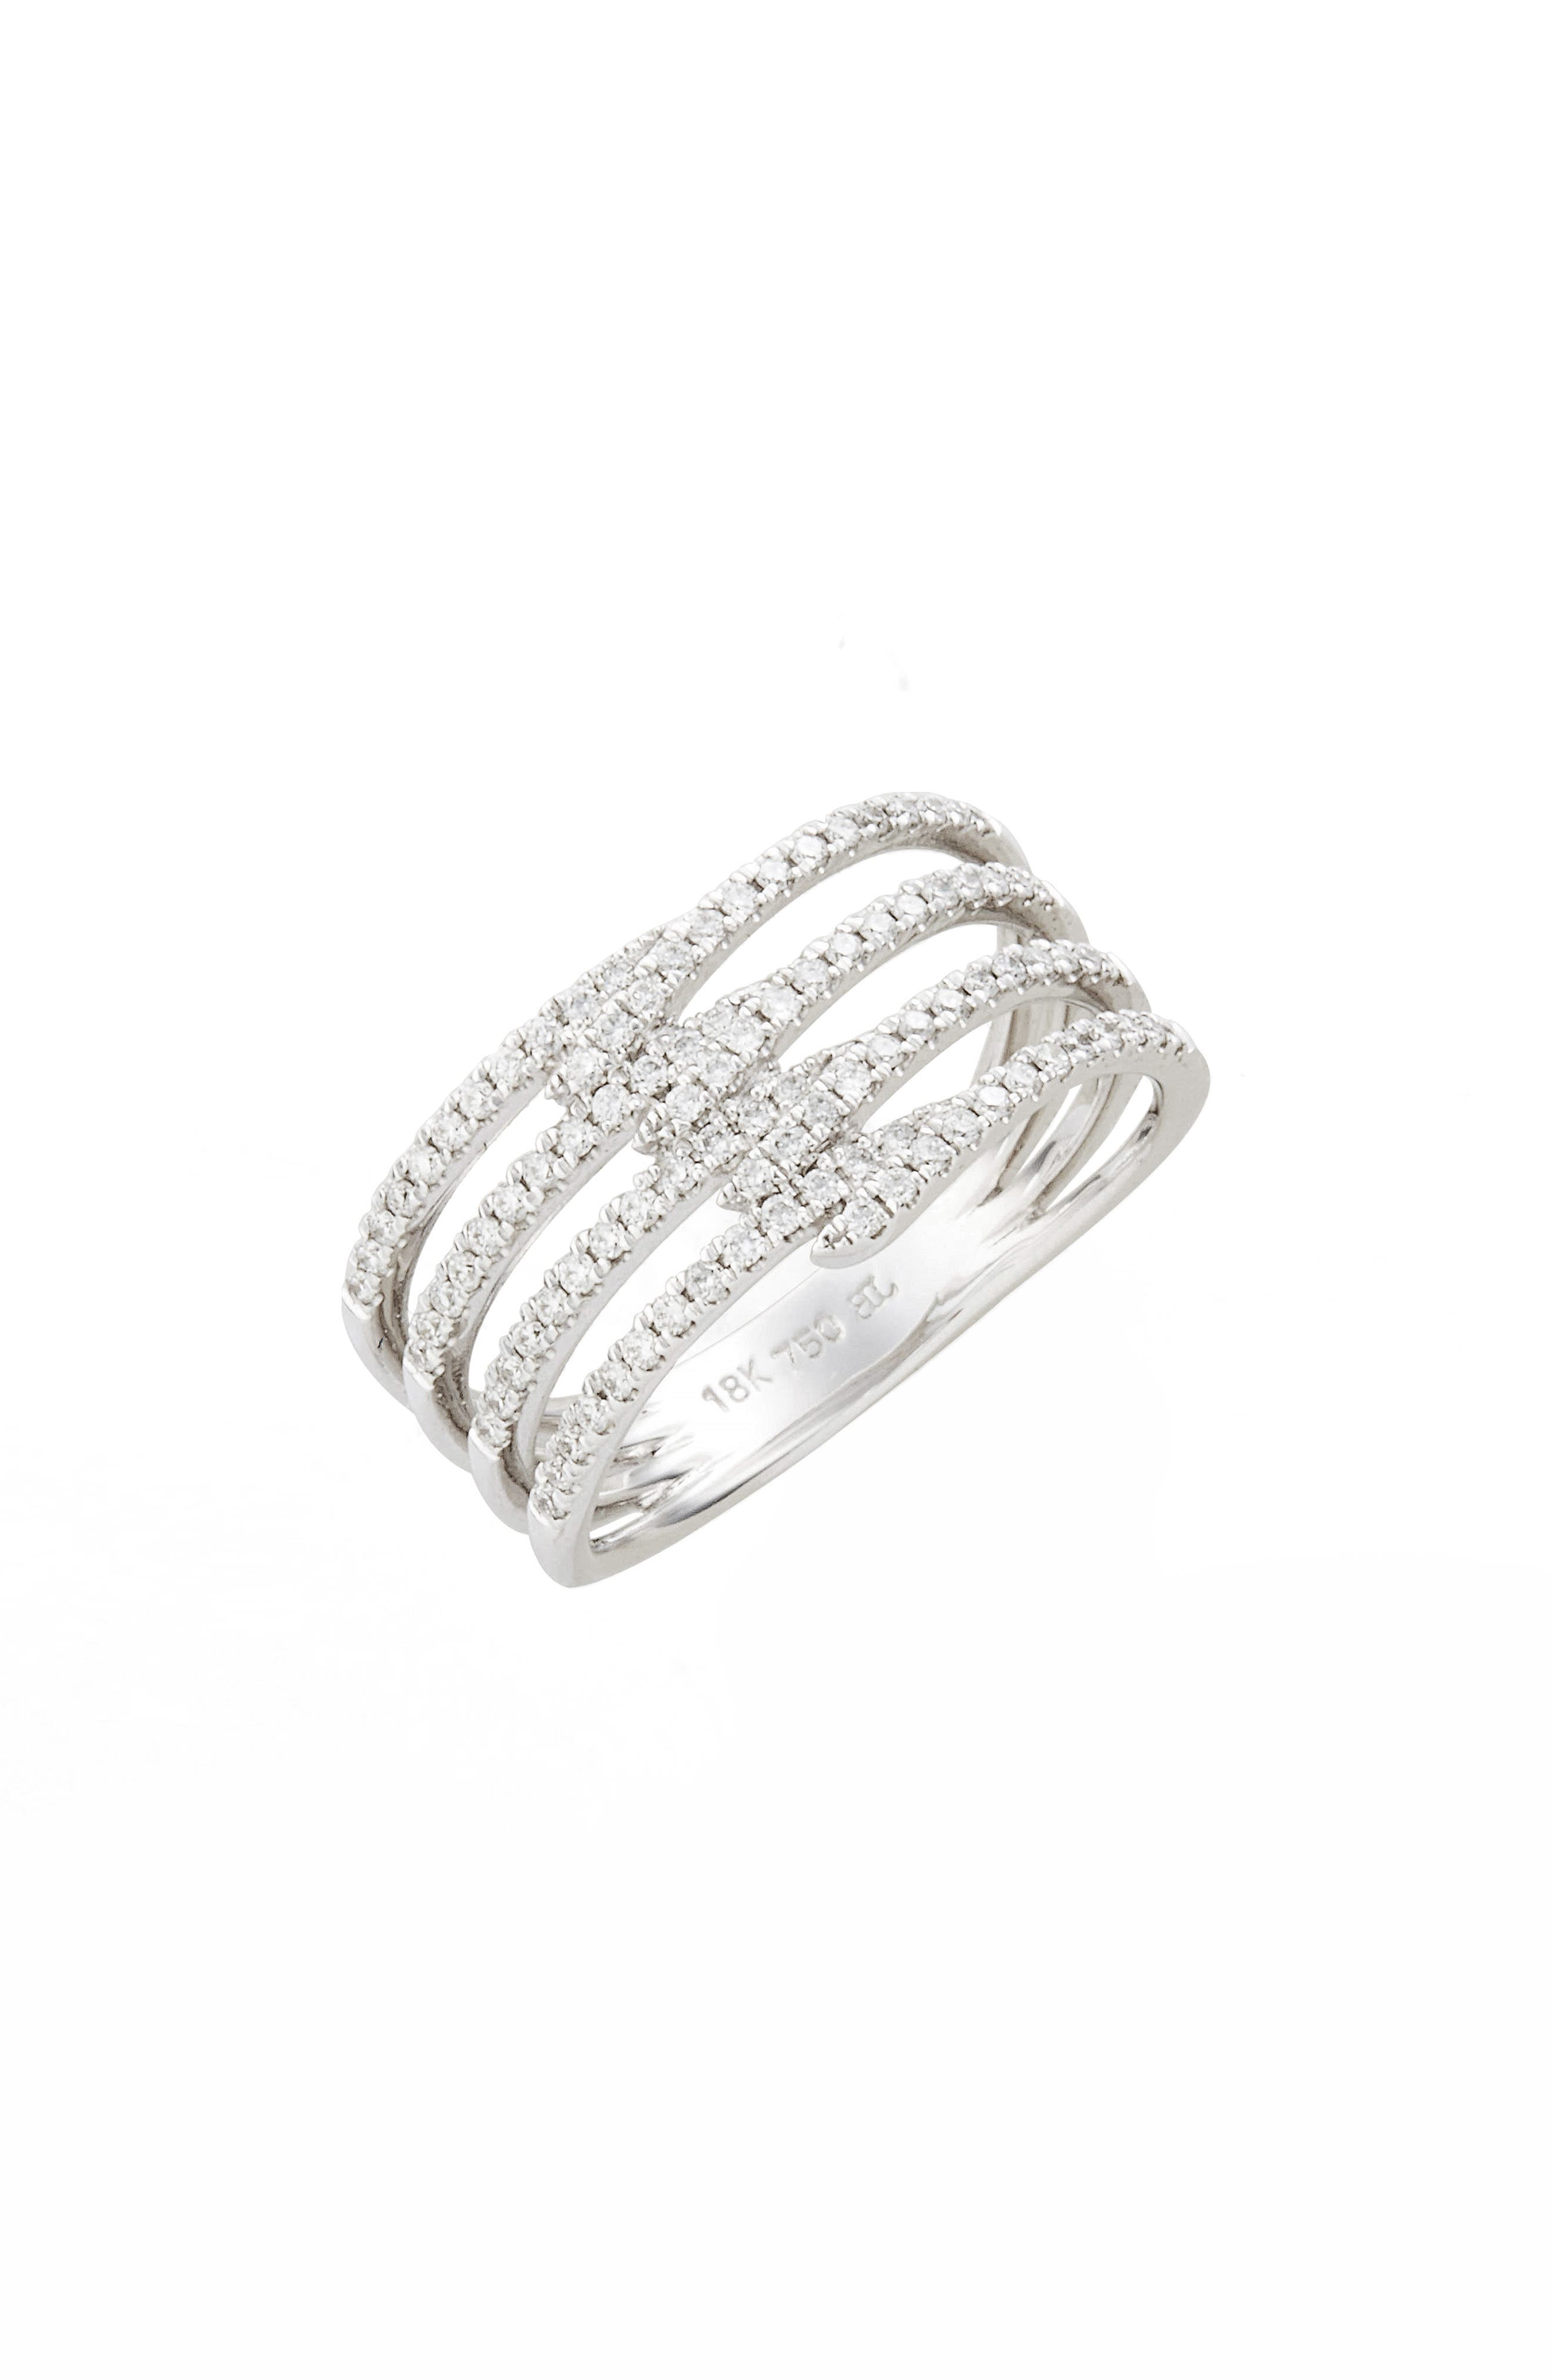 Alternate Image 1 Selected - Bony Levy Kiera Four-Row Diamond Ring (Nordstrom Exclusive)